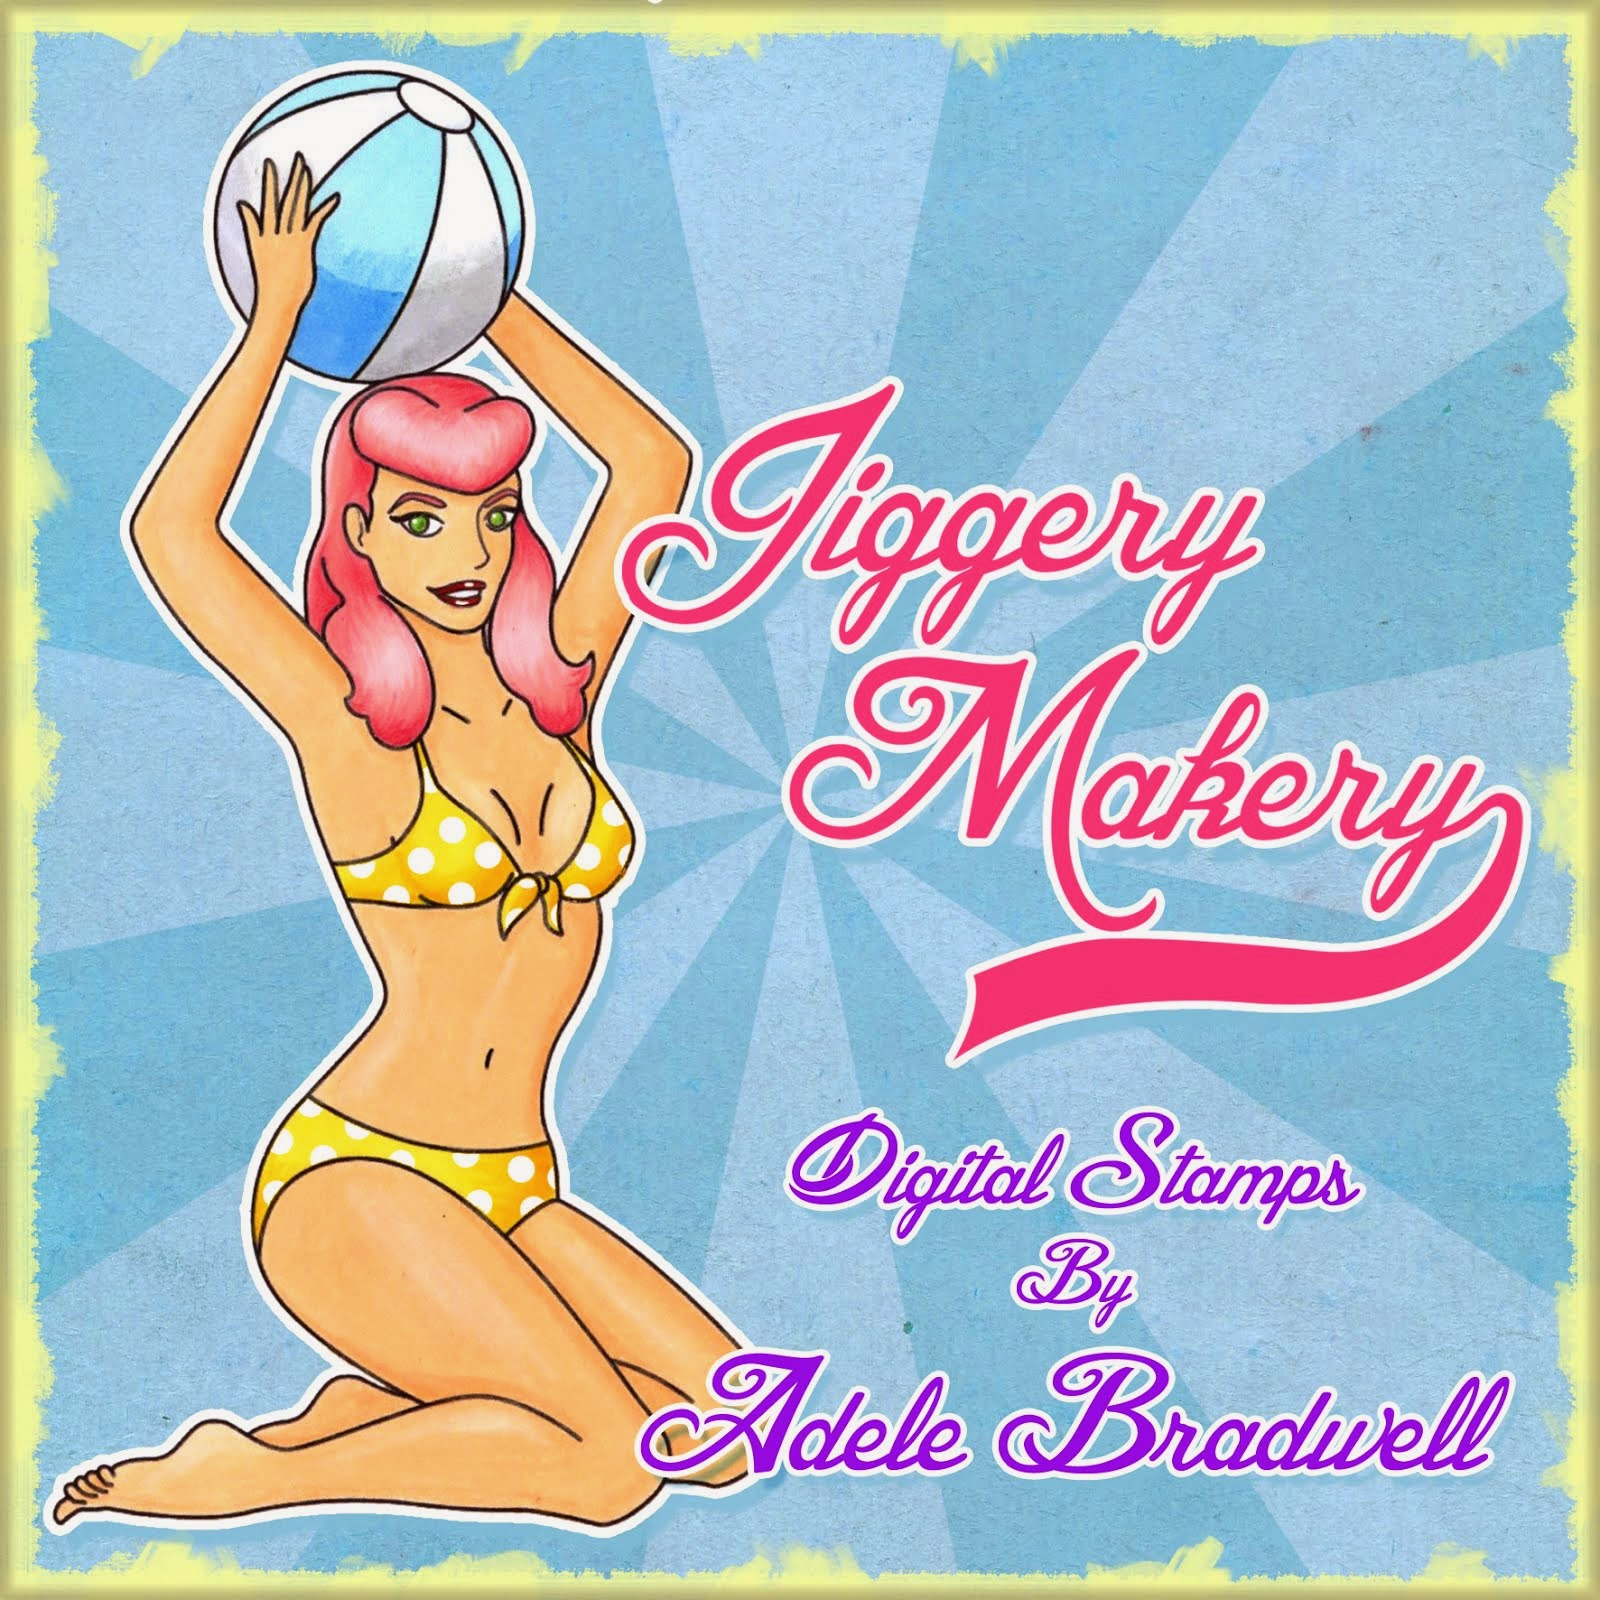 Jiggery Makery sponsors Quirky Crafts